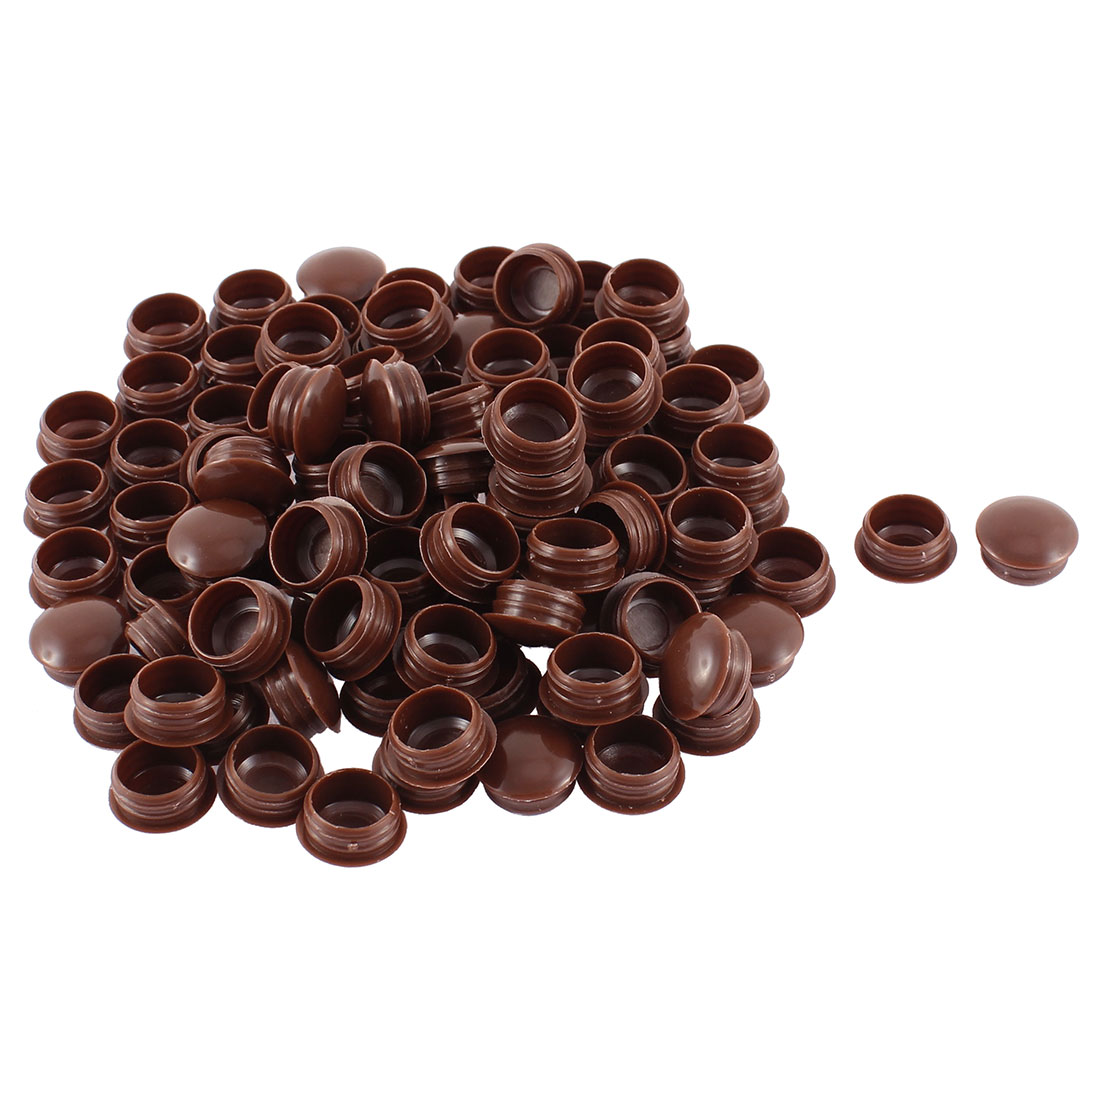 Home Plastic Furniture Decor Flush Type Hole Tube Insert Coffee Color 100pcs